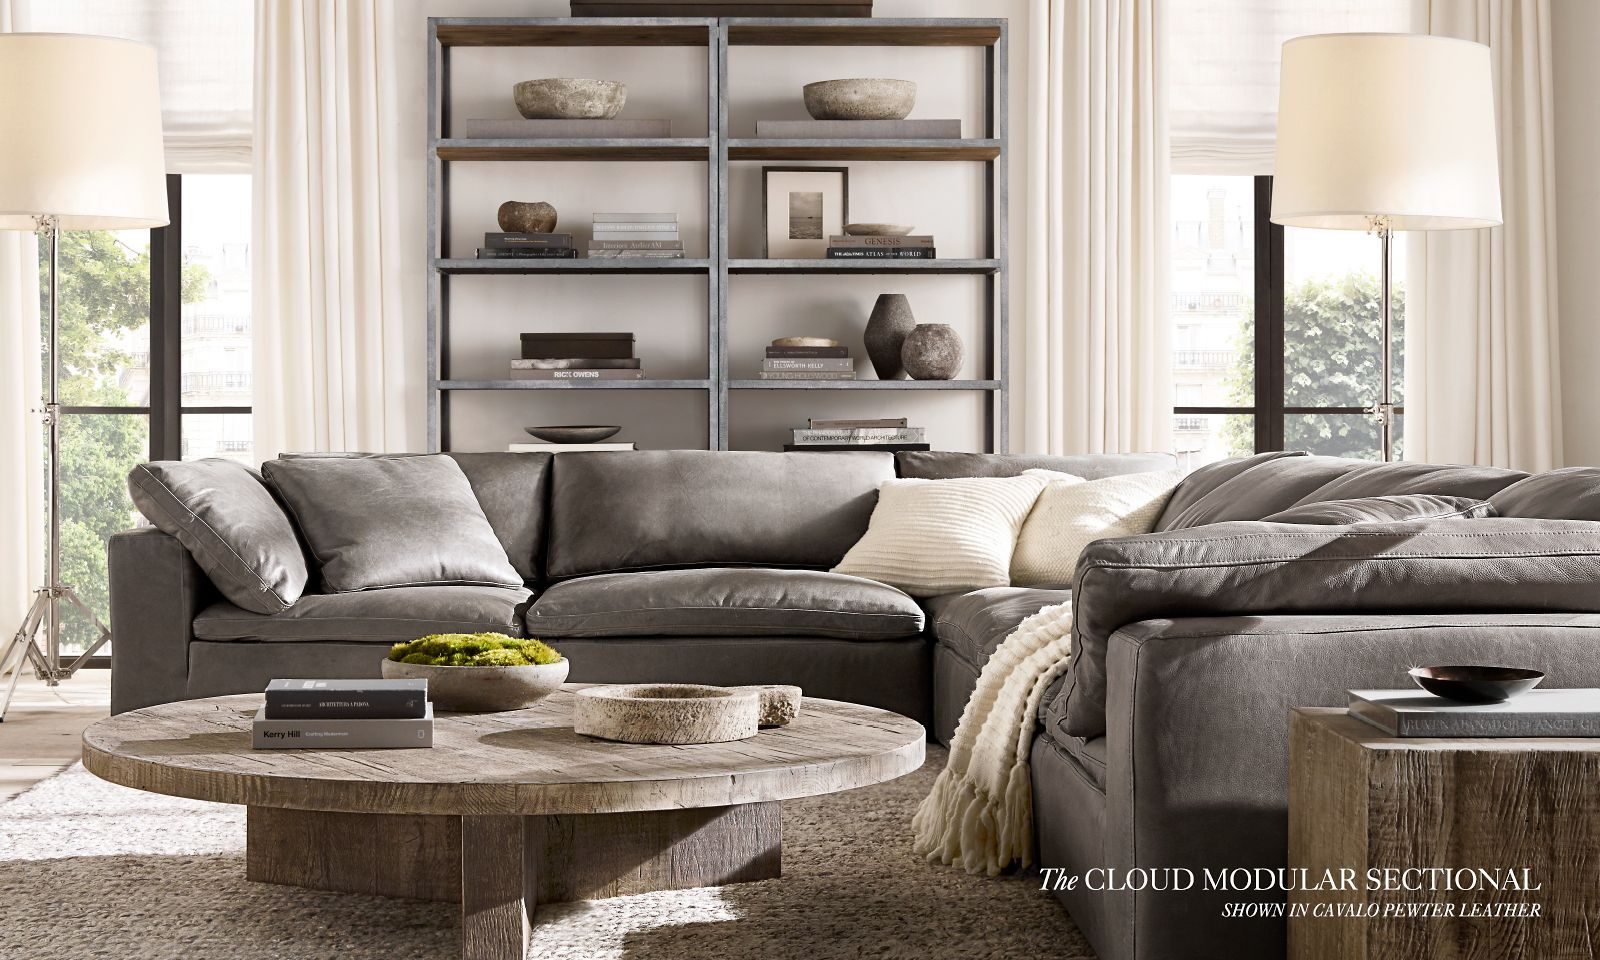 Canapé Modulable Atlas The Cloud Modular Sectional Shown In Cavalo Pewter Leather